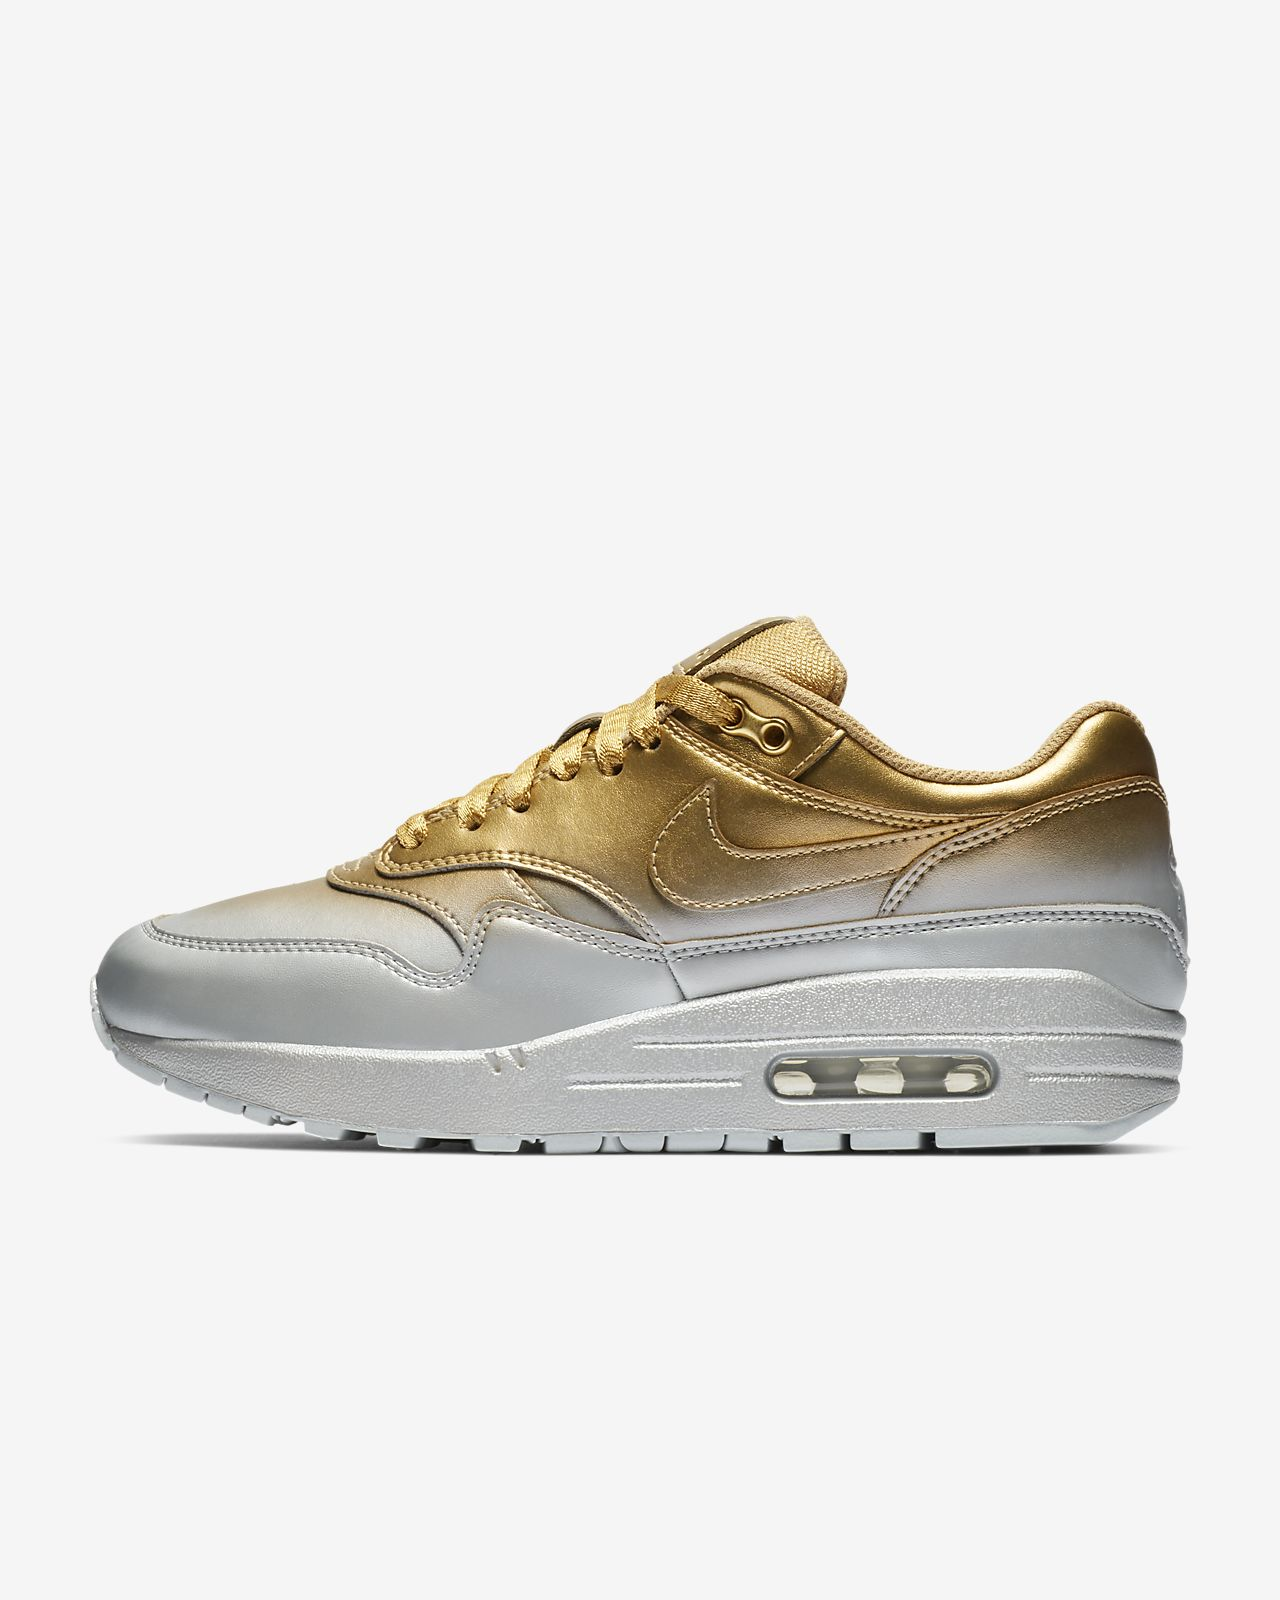 39475af74101c Nike Air Max 1 LX Women s Shoe. Nike.com